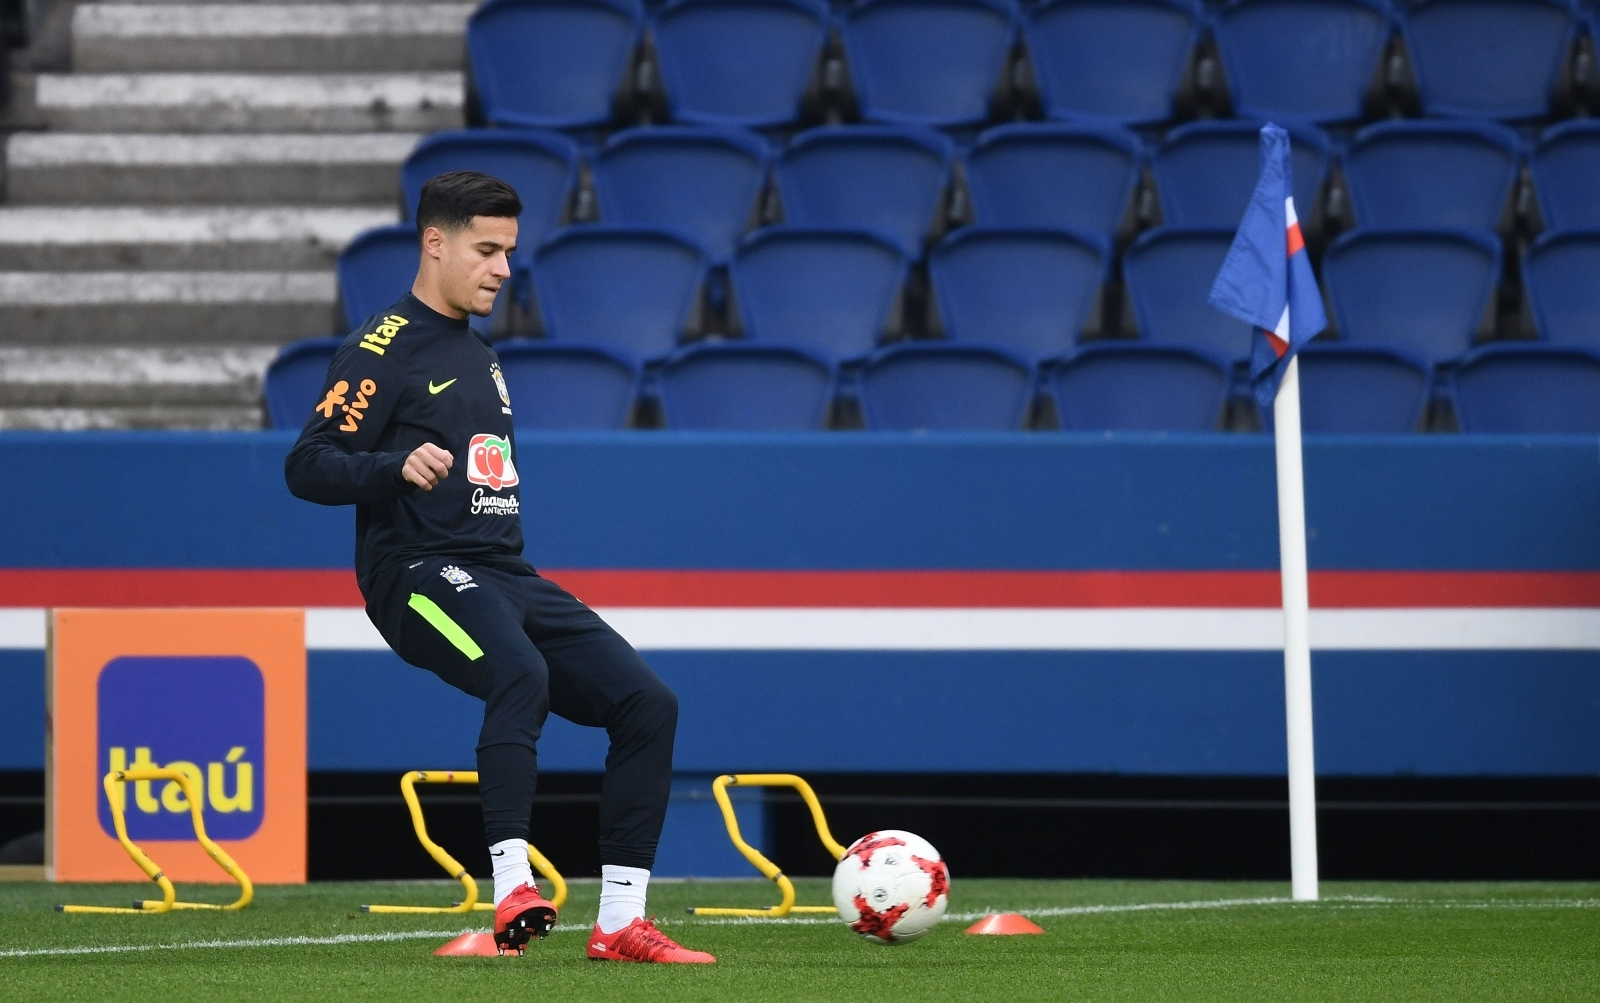 'Happy' Philippe Coutinho plays down talk of switch from Liverpool to Barcelona